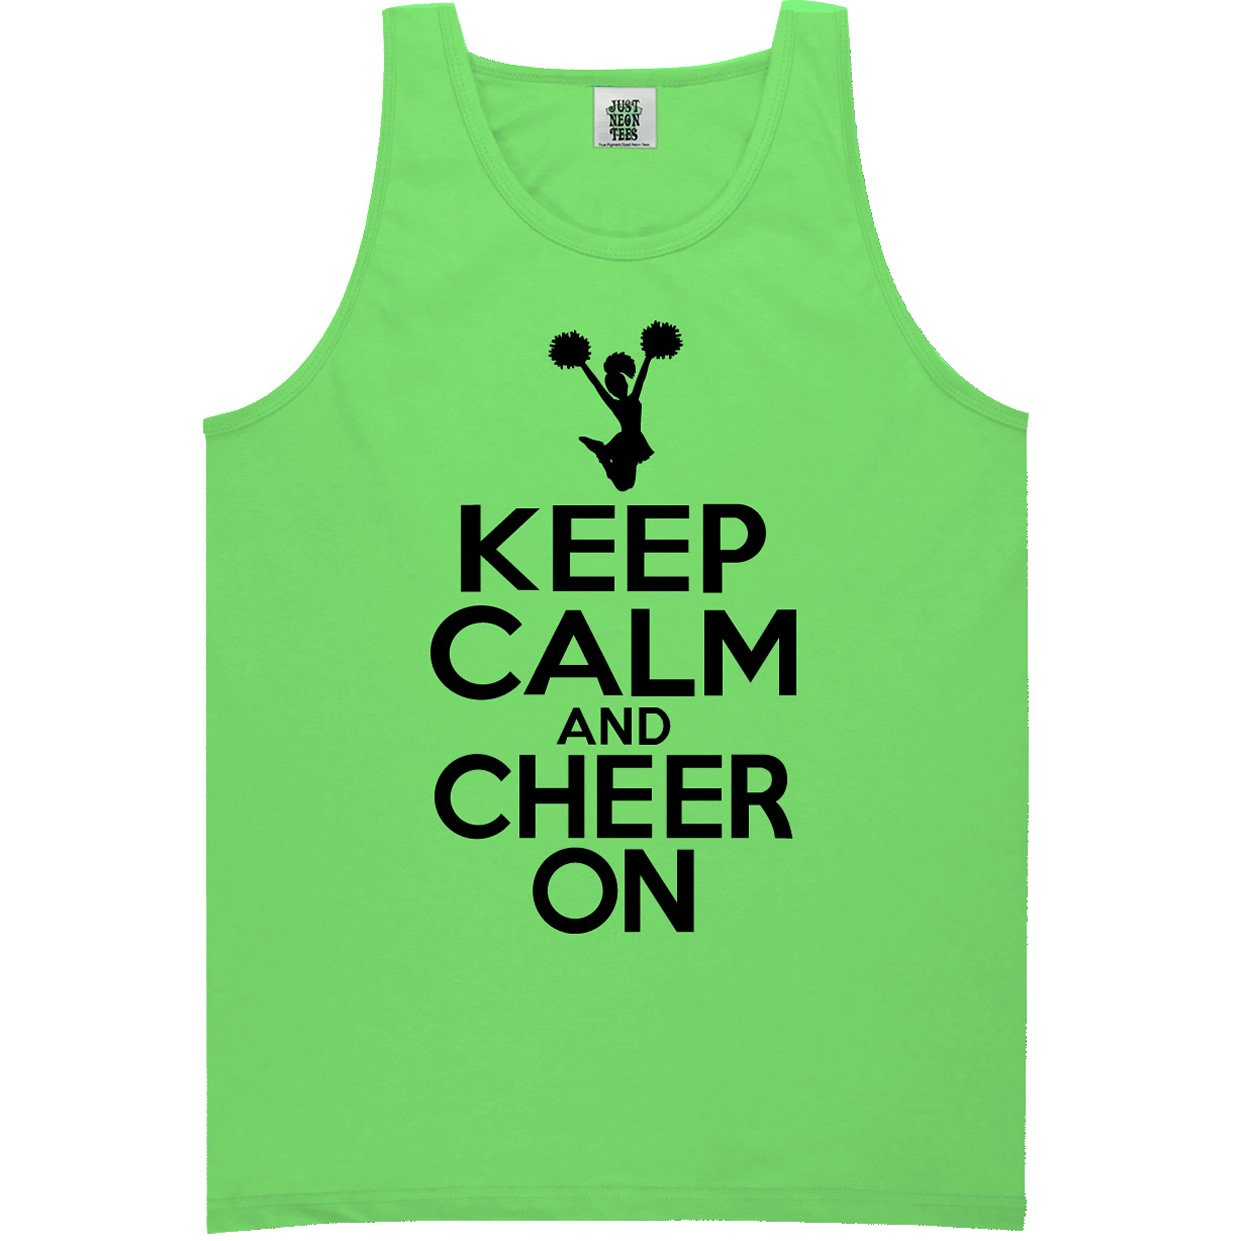 Keep Calm And Cheer On Bright Neon Tank Top 6 Bright Colors 6864 Shirts